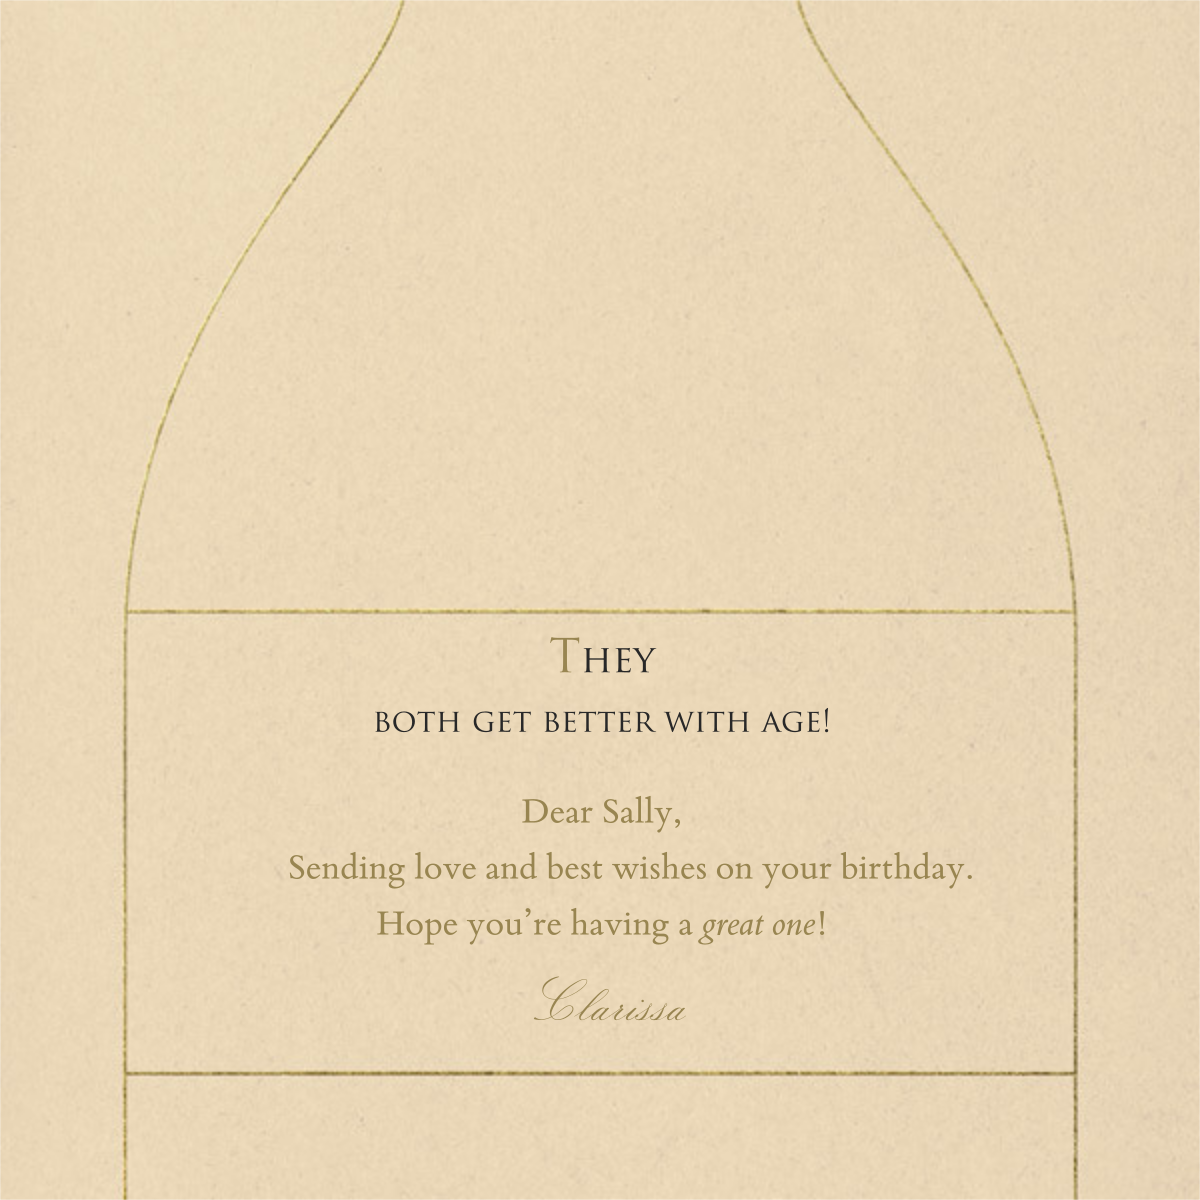 Both Get Better With Age - Paperless Post - Free birthday eCards - card back